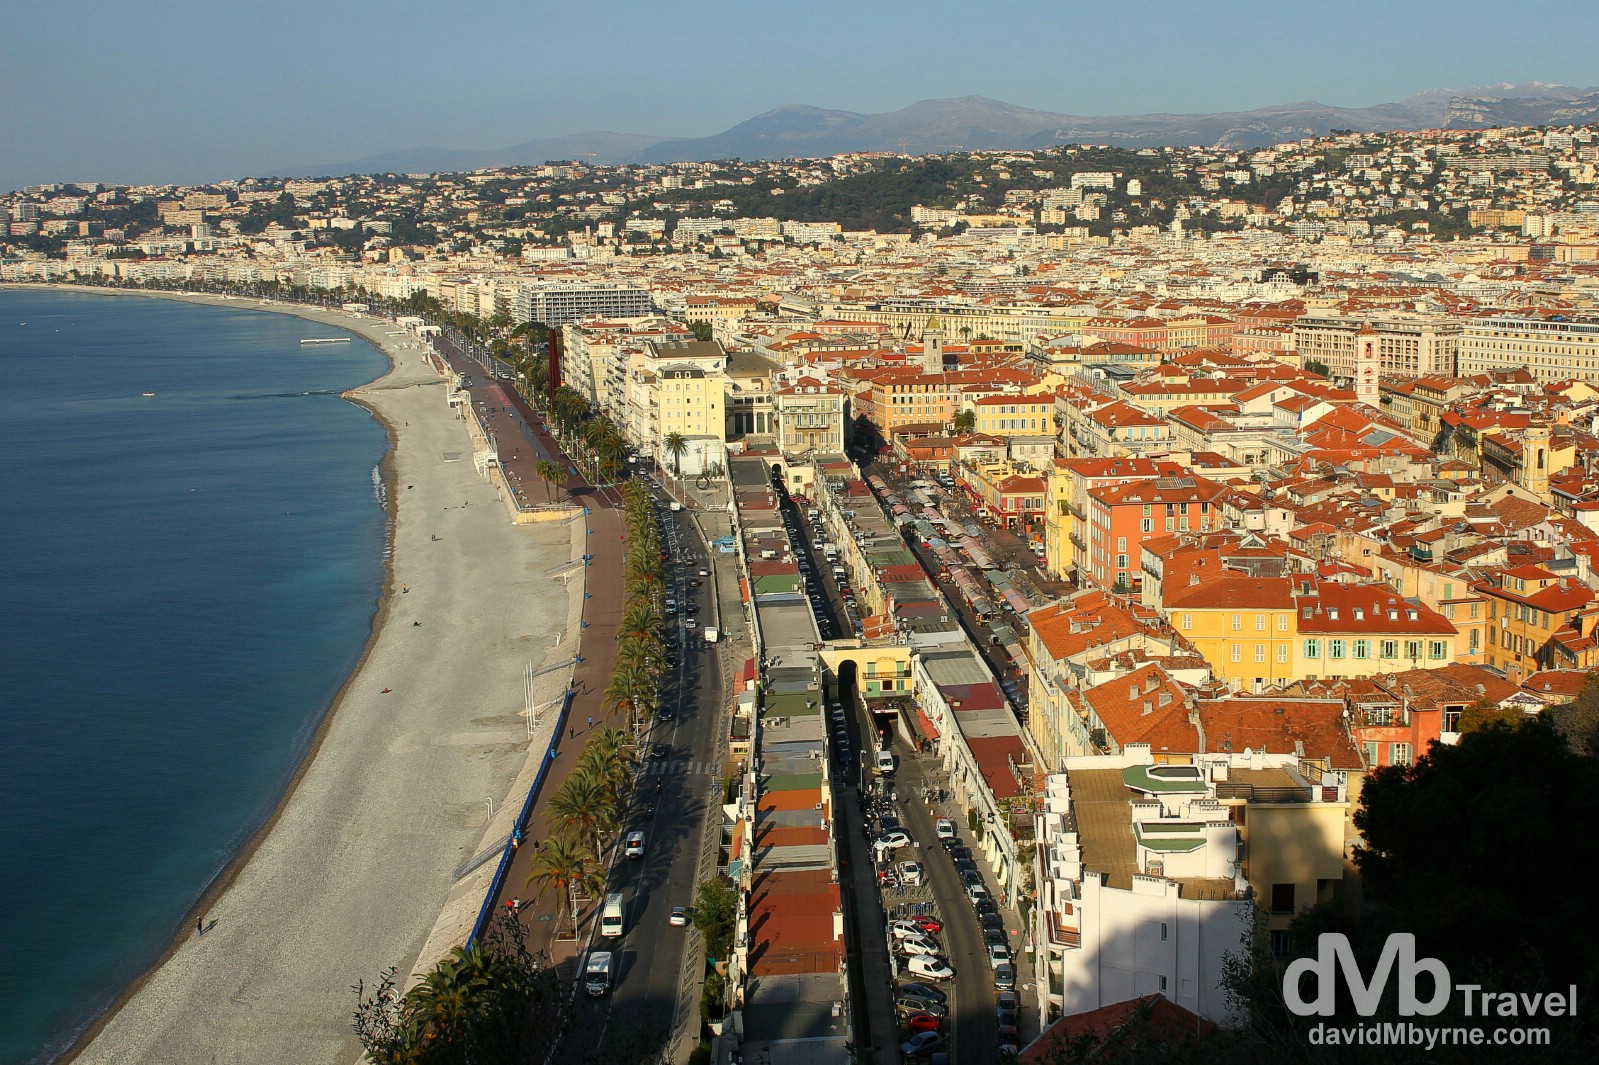 Nice as seen from Parc du Chateau, Nice, Côte d'Azur, France. March 14, 2014.